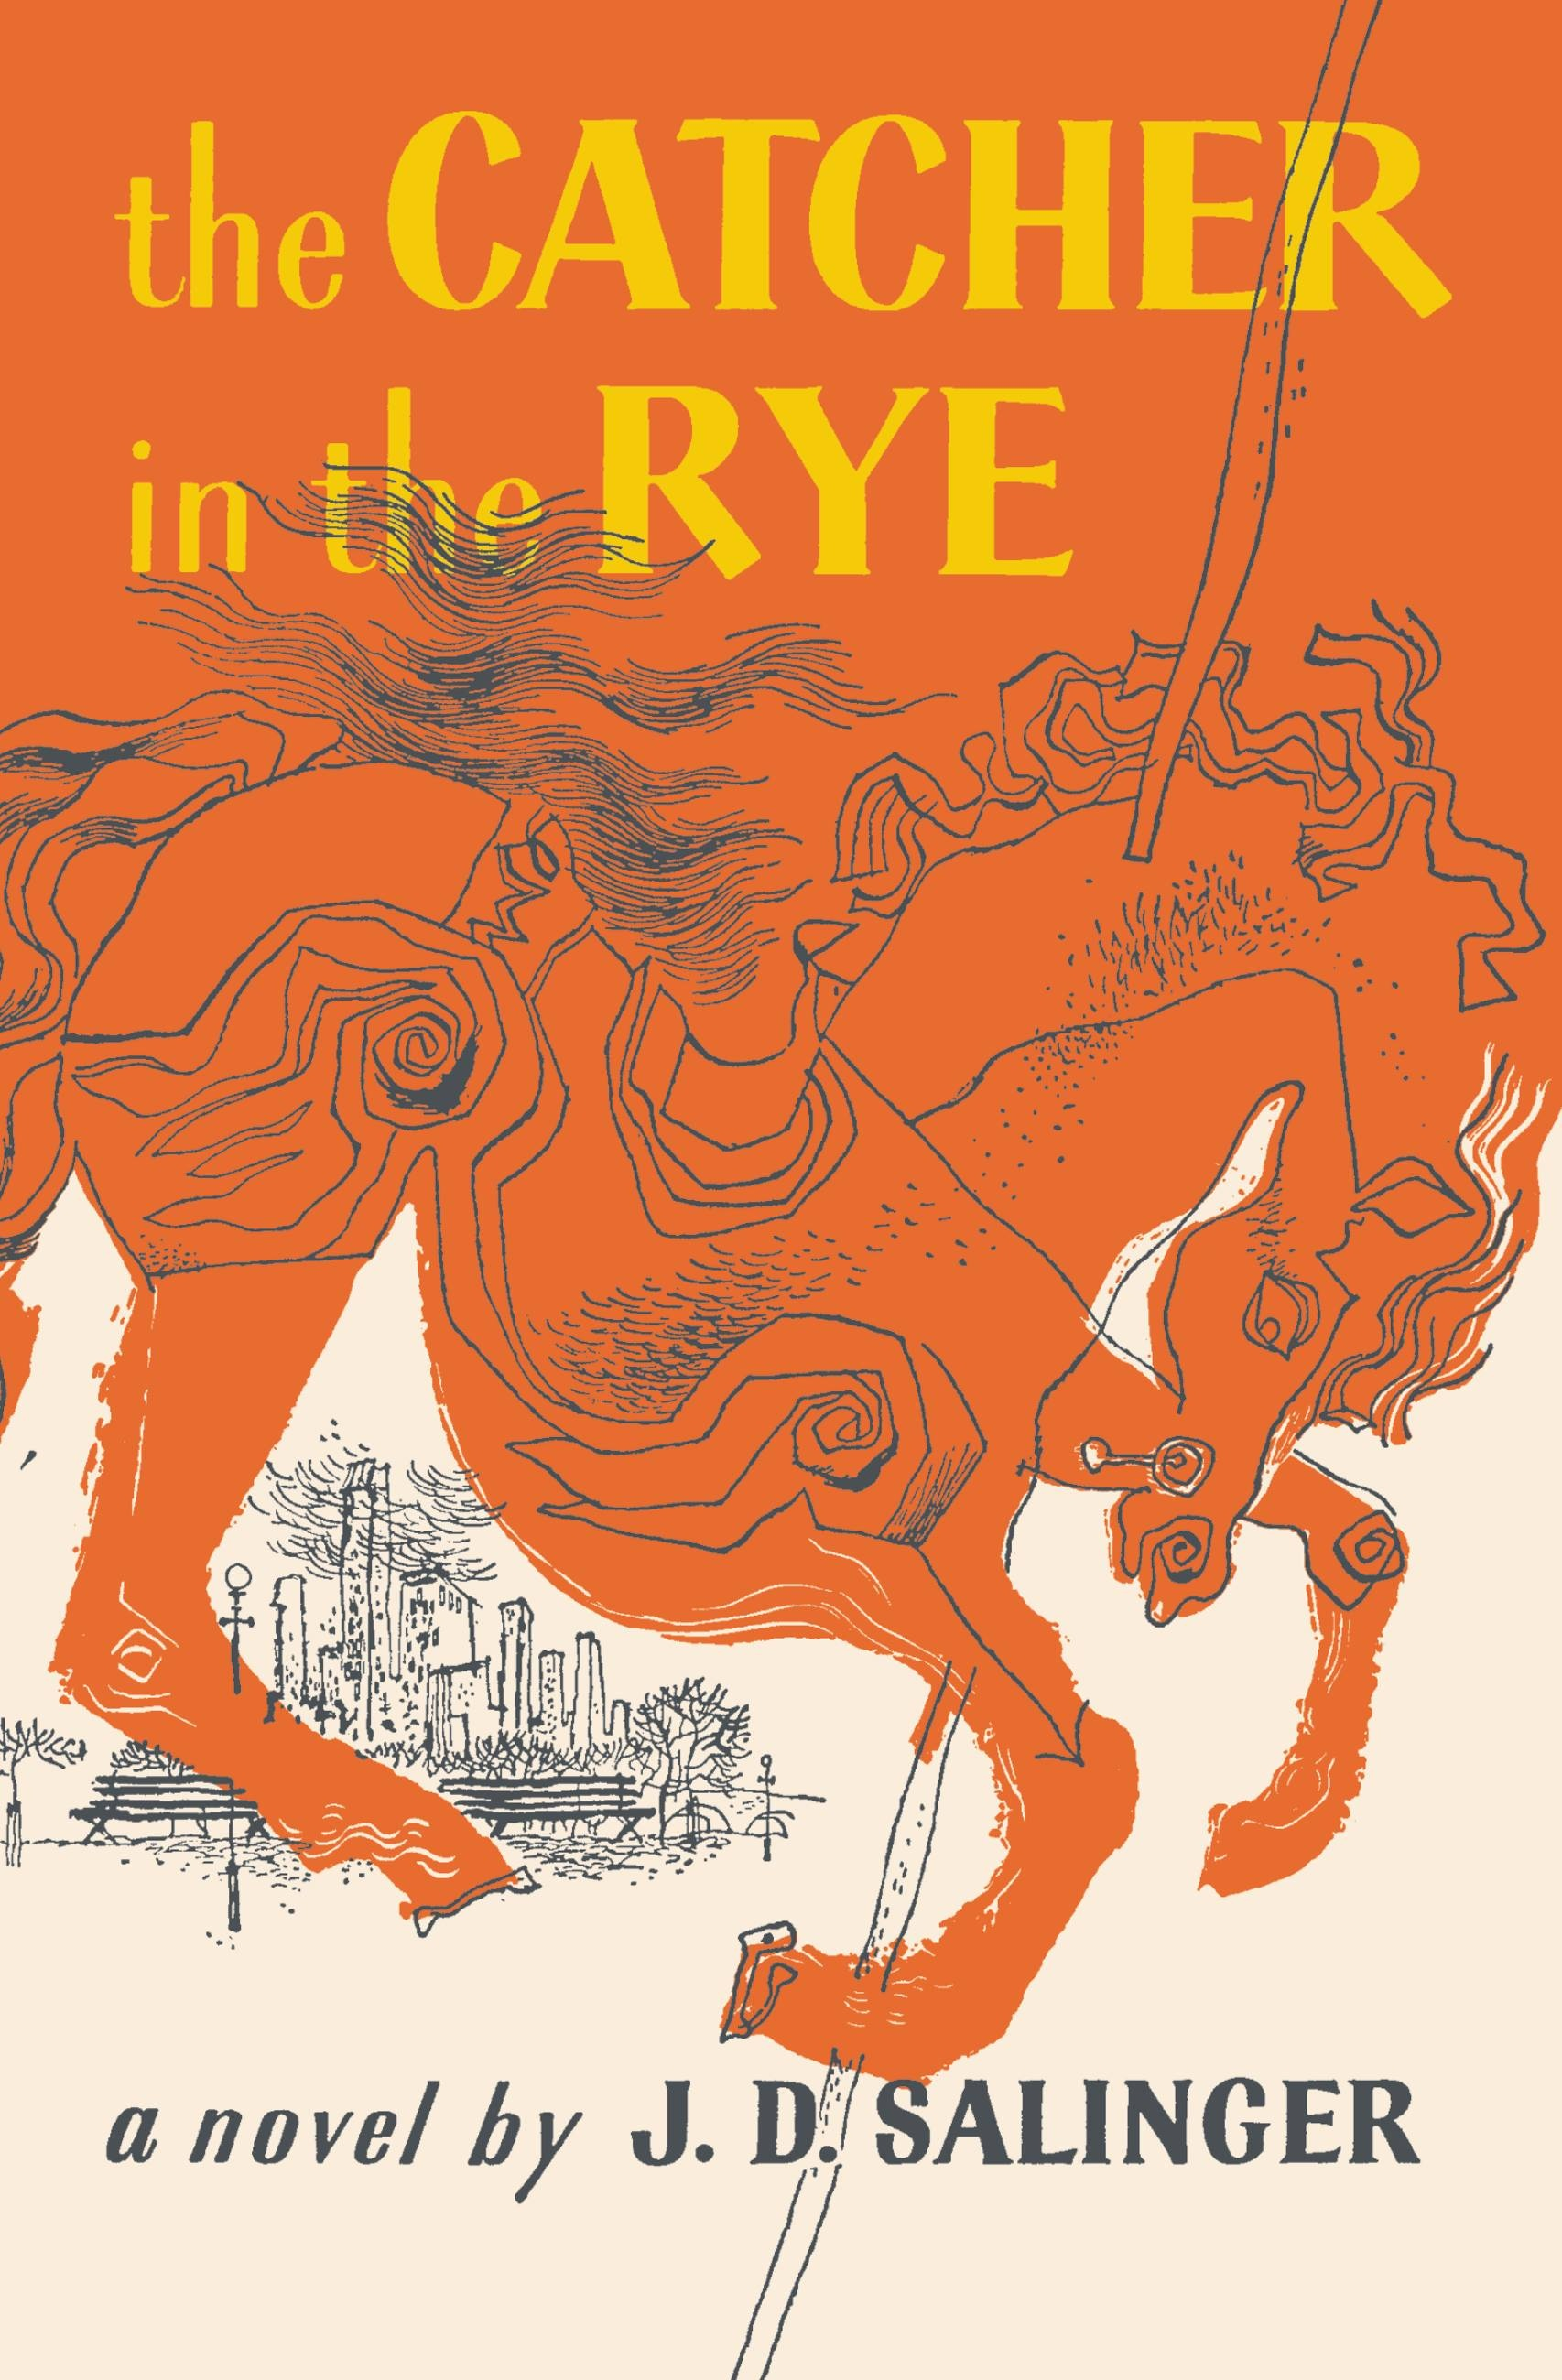 an analysis of the character of the catcher in the rye by jd salinger The catcher in the rye study guide contains a biography of jd salinger, literature essays, quiz questions, major themes, characters, and a full summary and analysis.